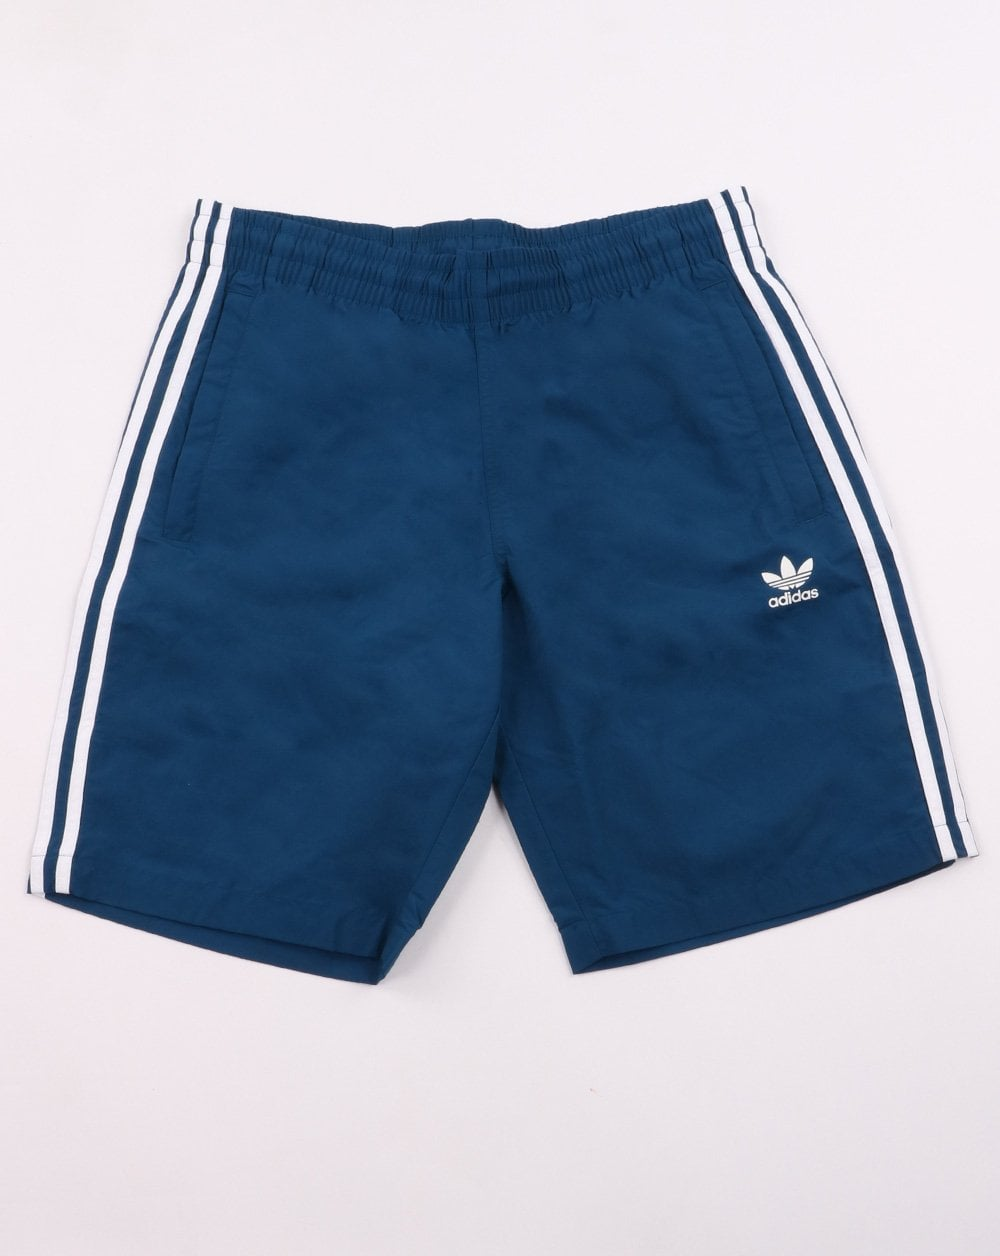 b74327da62 adidas Originals Adidas Originals 3 Stripe Swim Shorts Deep Blue